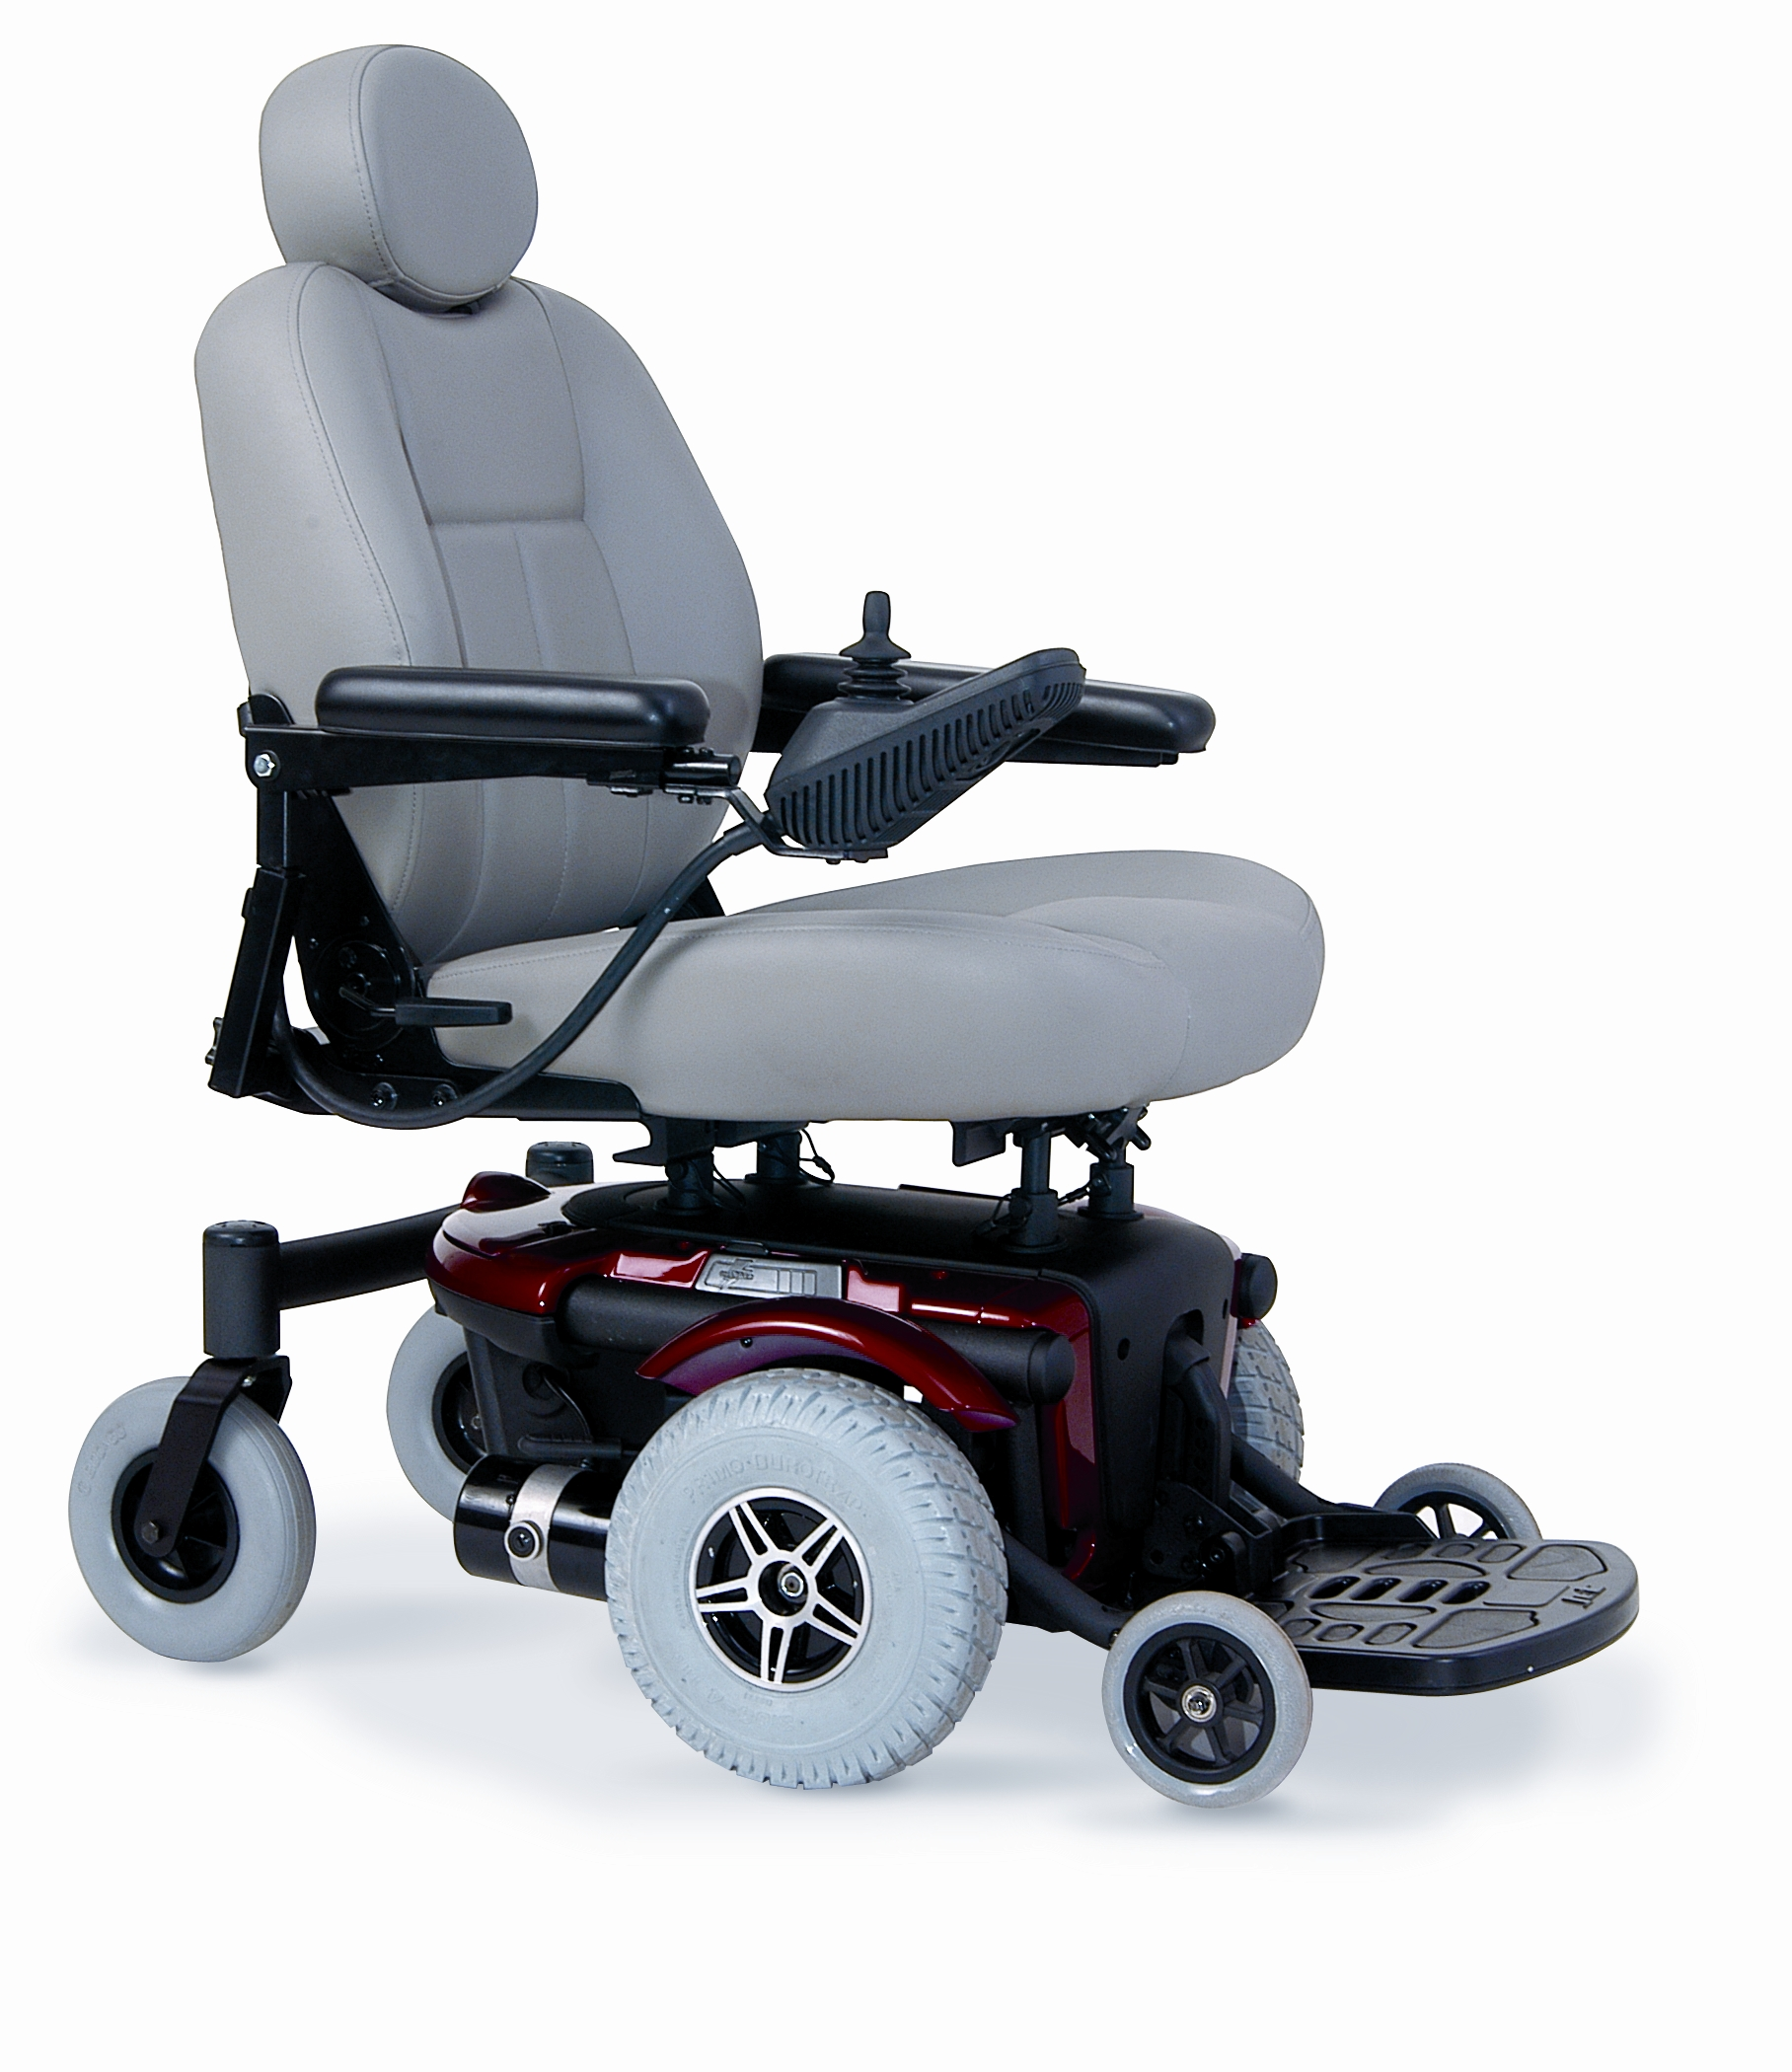 jet3ultraHB pride jazzy jet 3 ultra electric wheelchair pride jet 3 ultra wiring diagram at edmiracle.co